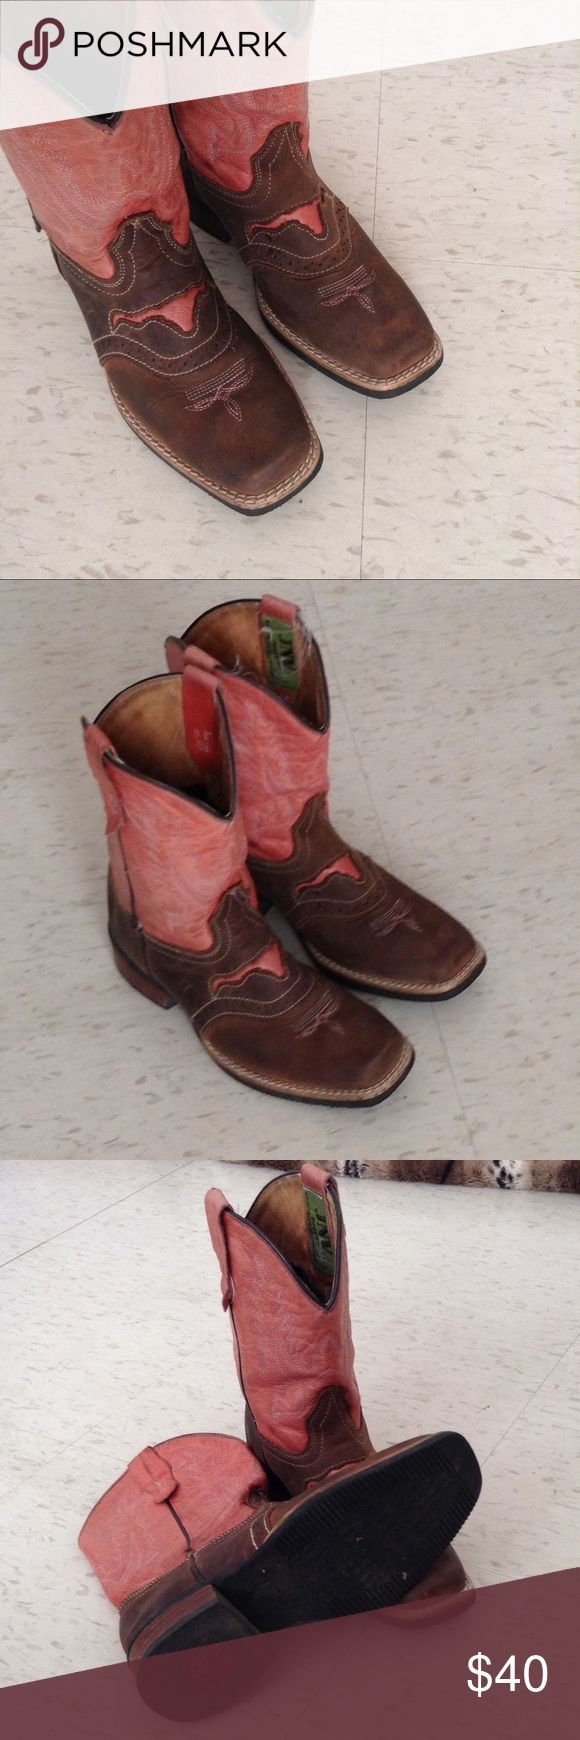 JNV Pink Cowgirl Boots   Made in Mexico   Leather Cowgirl boots for girls   Size 13   Made In Mexico JNV Shoes Boots